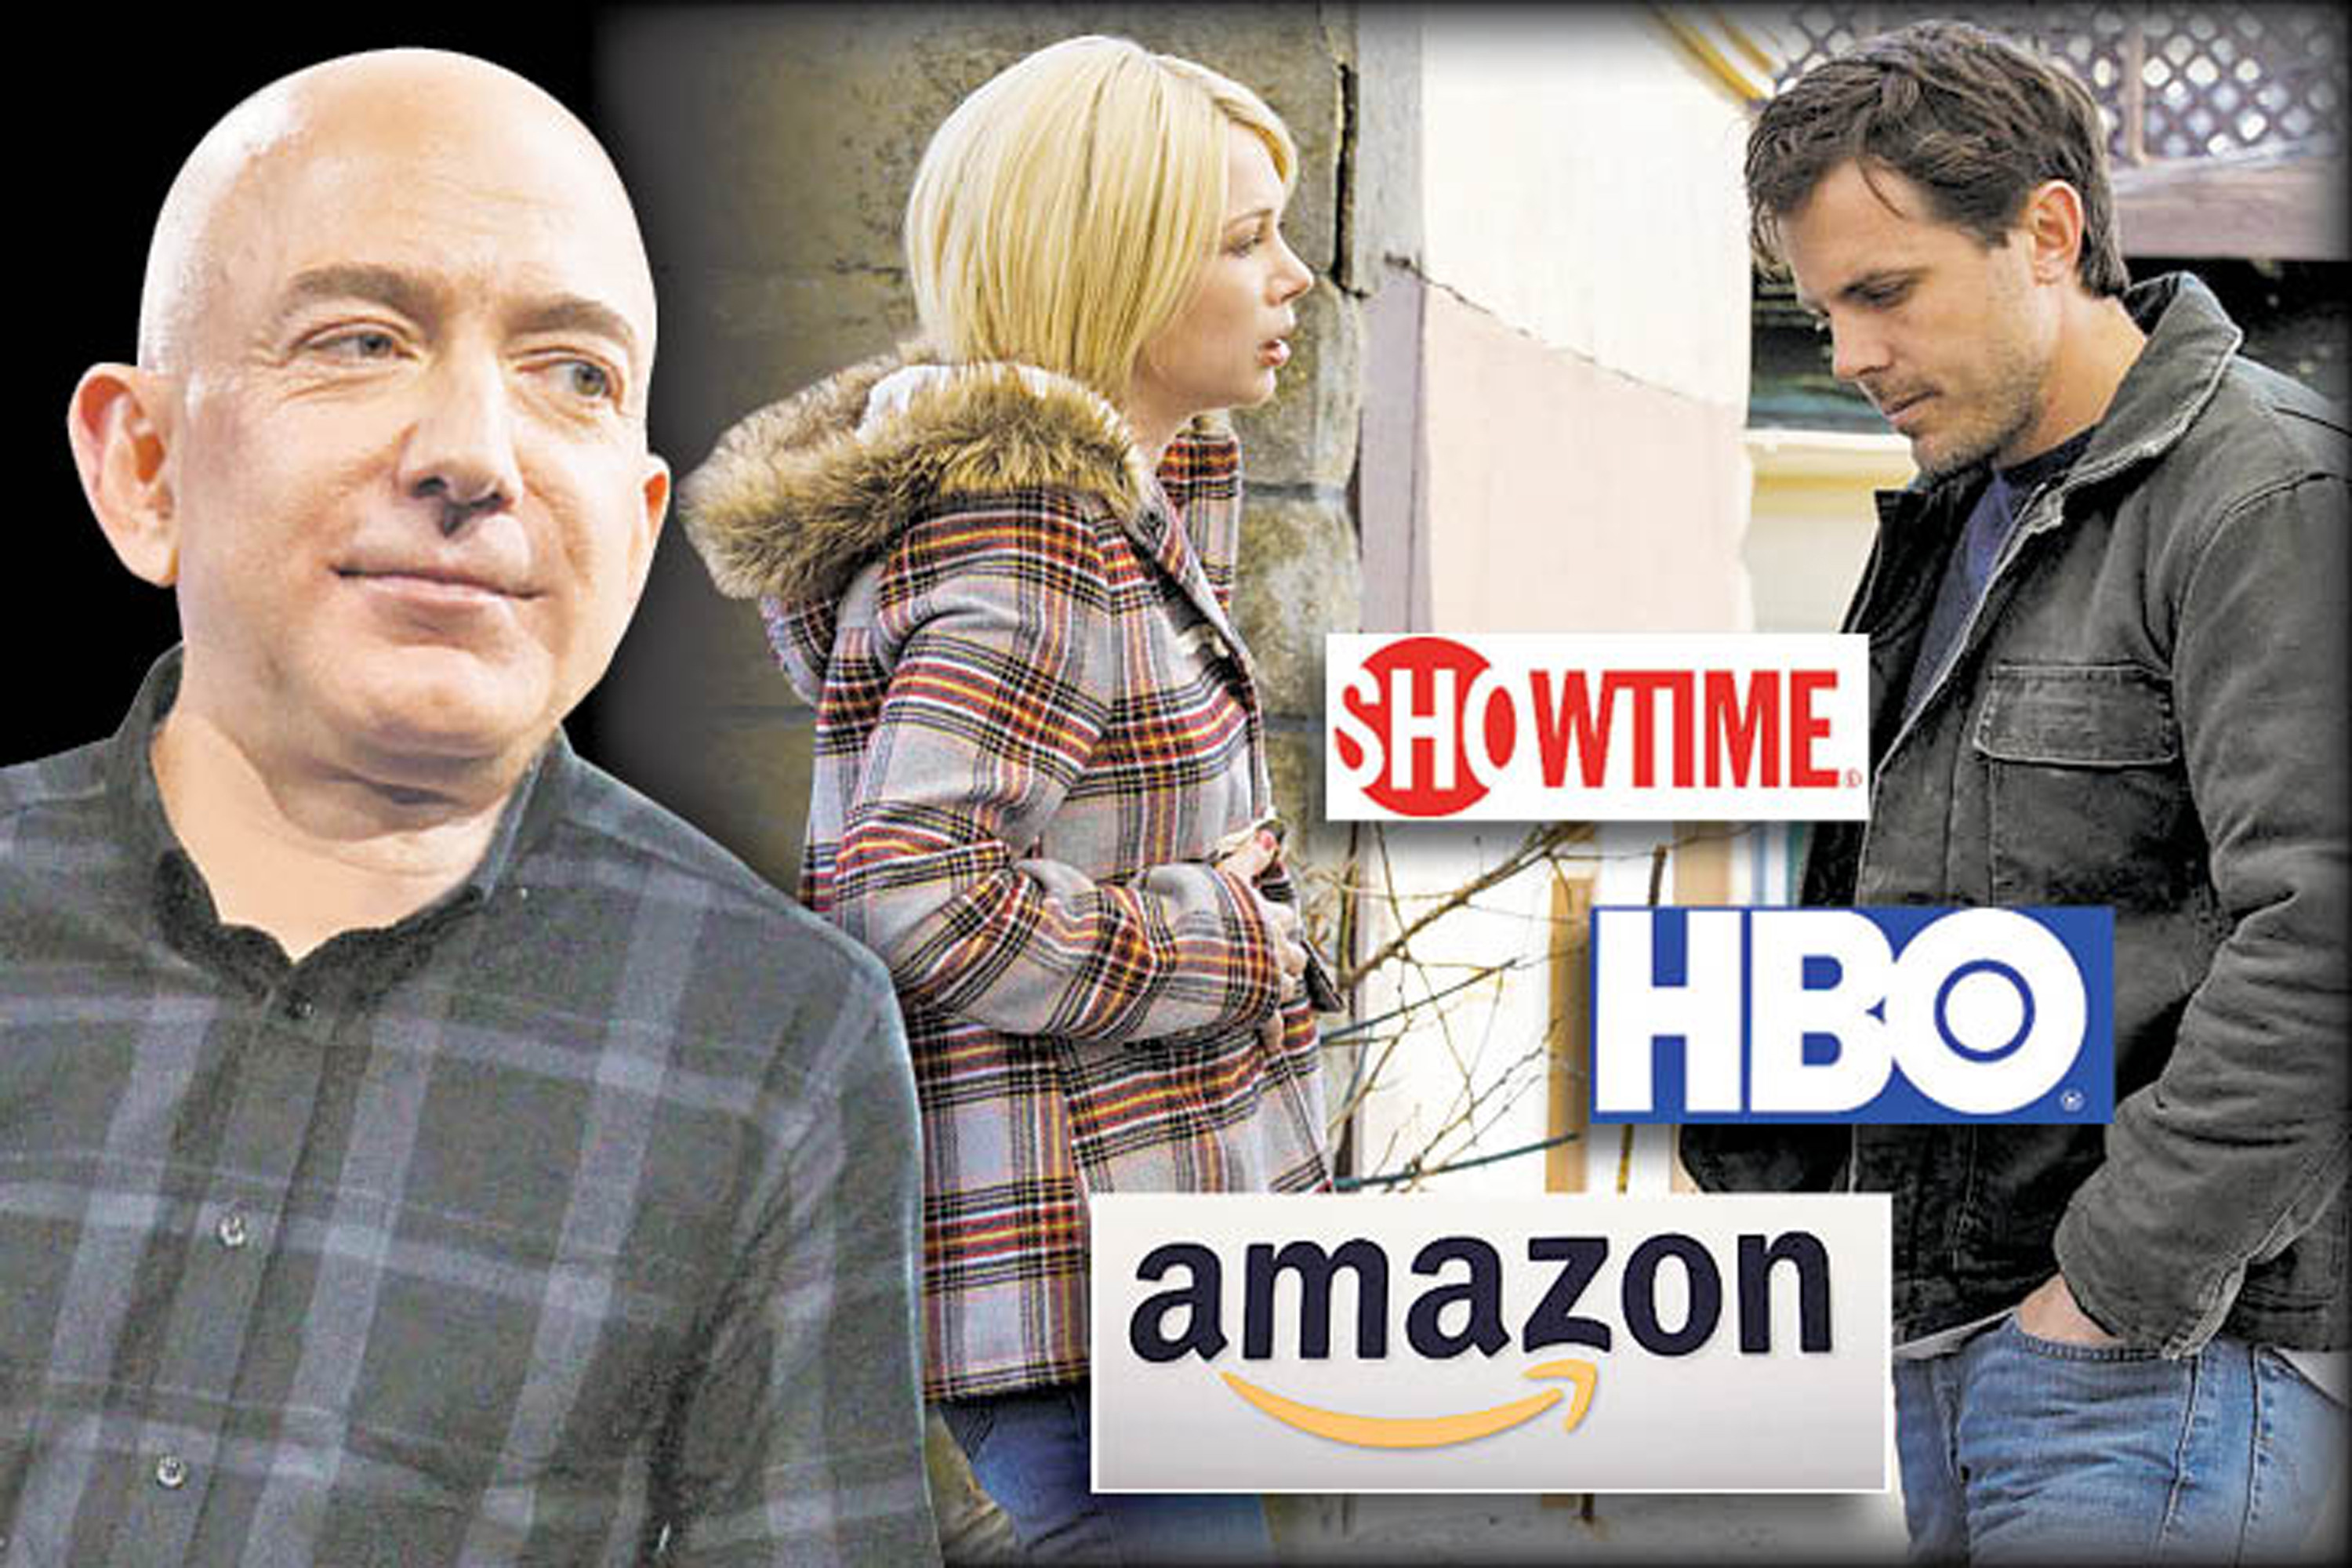 Jeff Bezos wants Amazon to be the next HBO, Showtime | New York Post